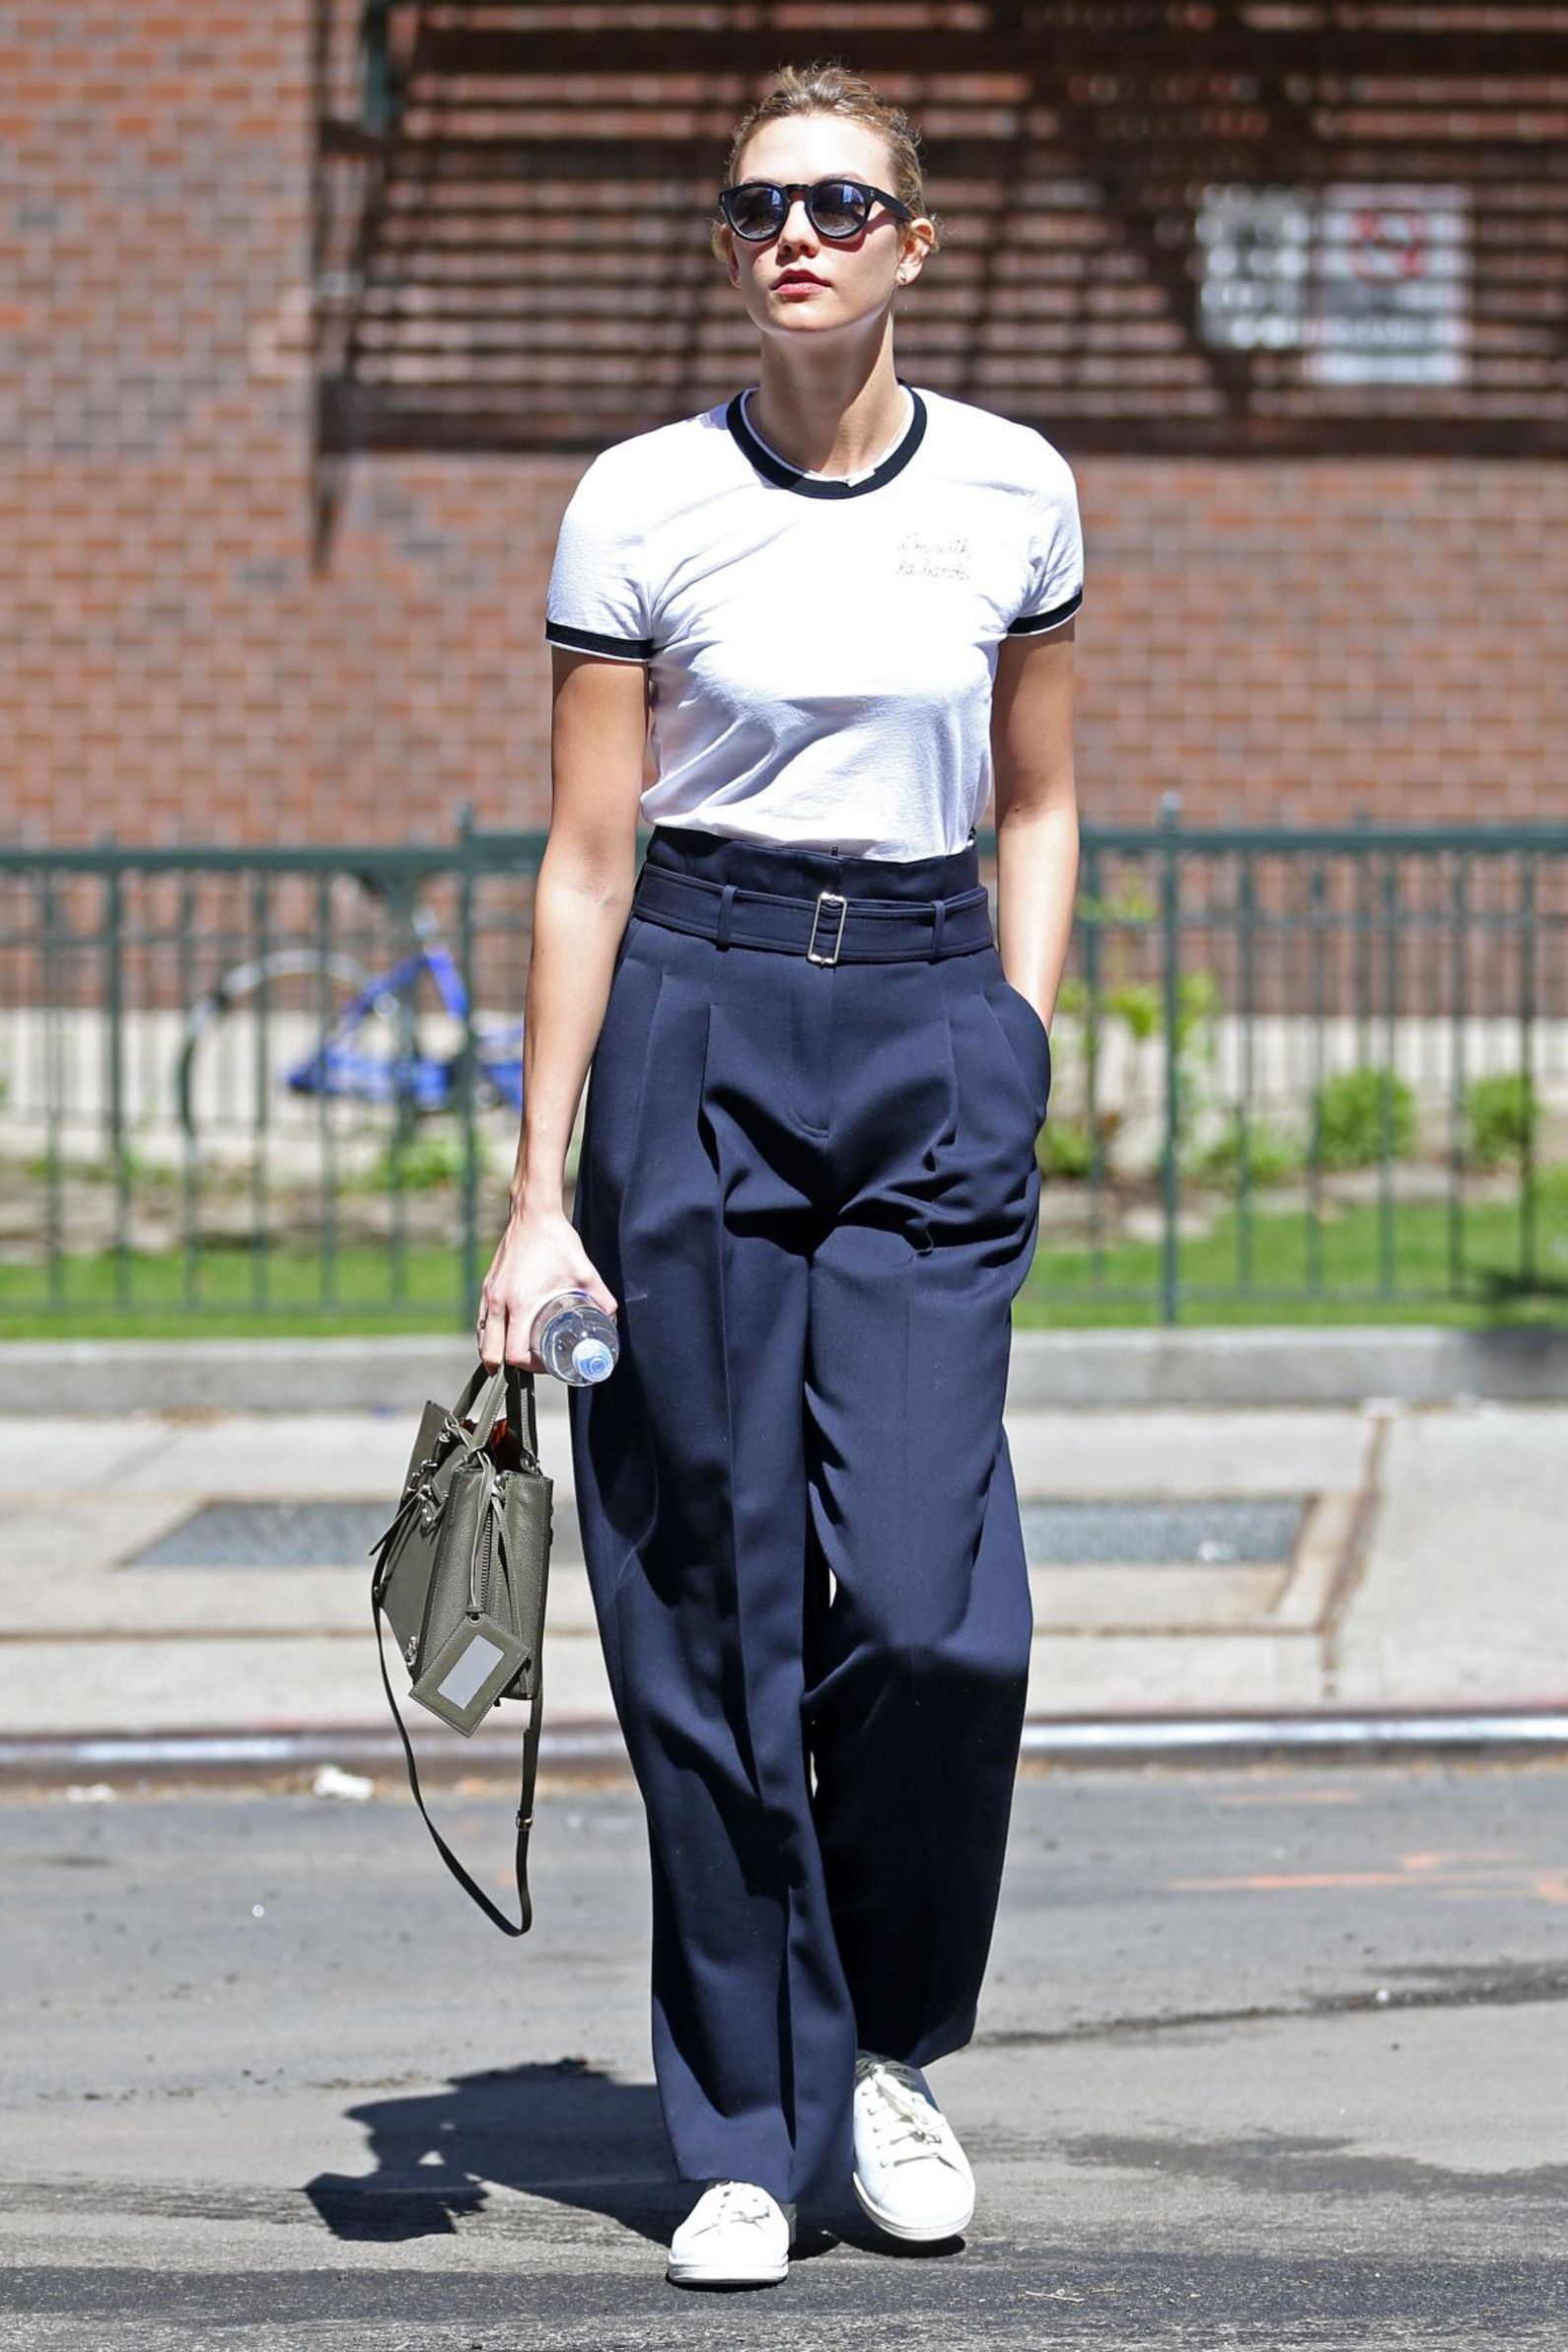 Karlie Kloss made her way around NYC in the  adidas Stan Smith